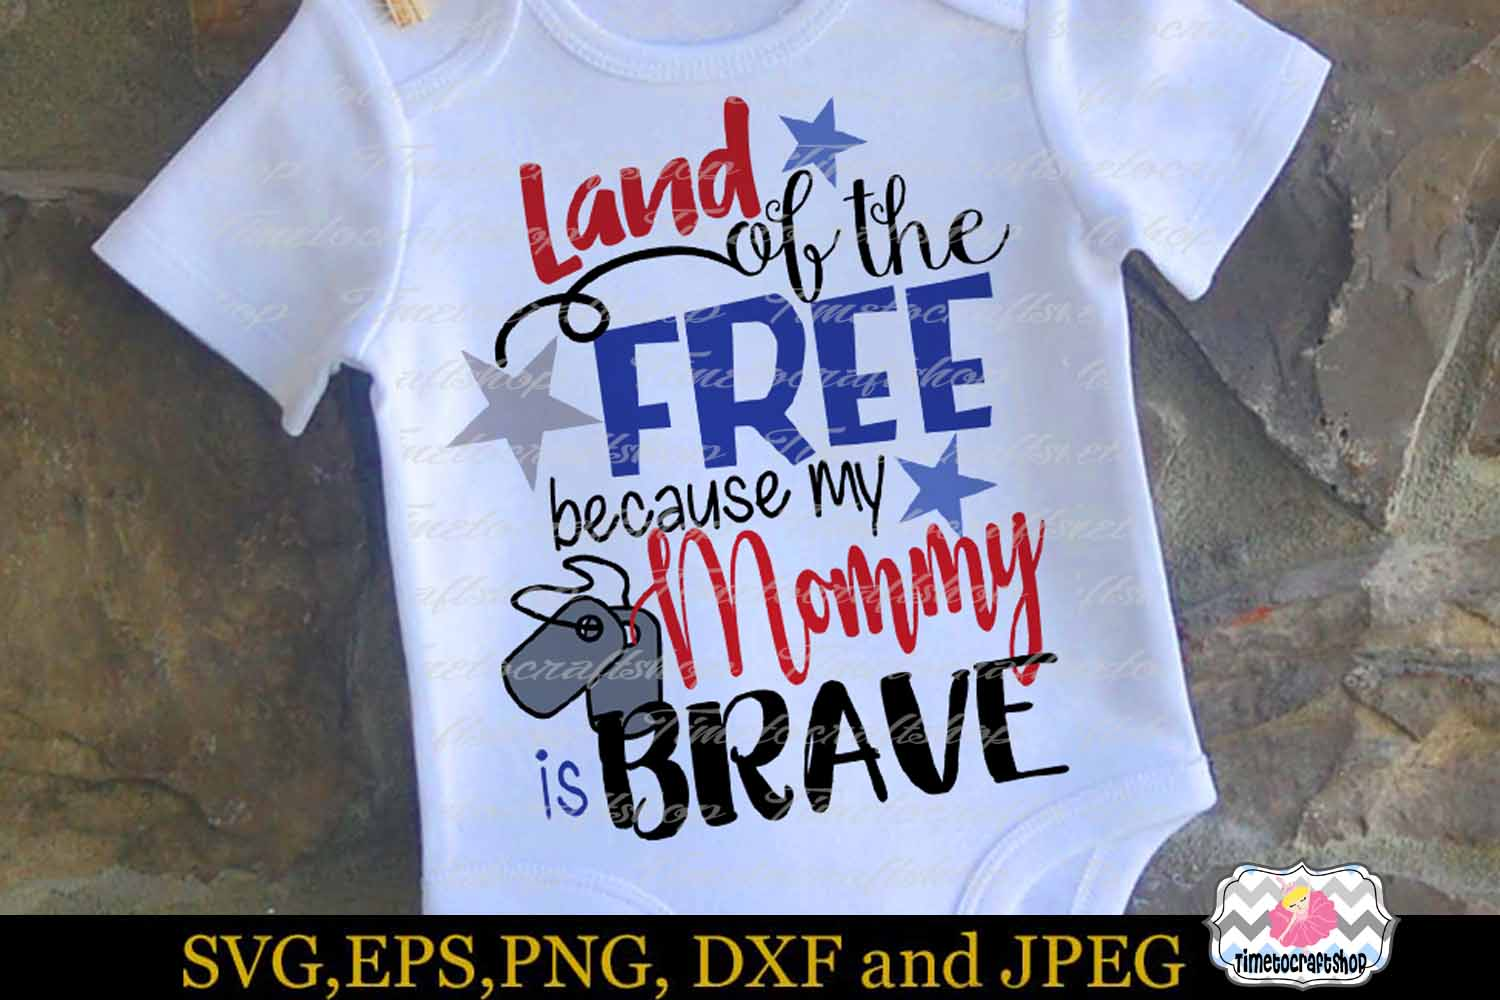 SVG, Dxf, Png Land of the Free Because of the Brave Bundle example image 7